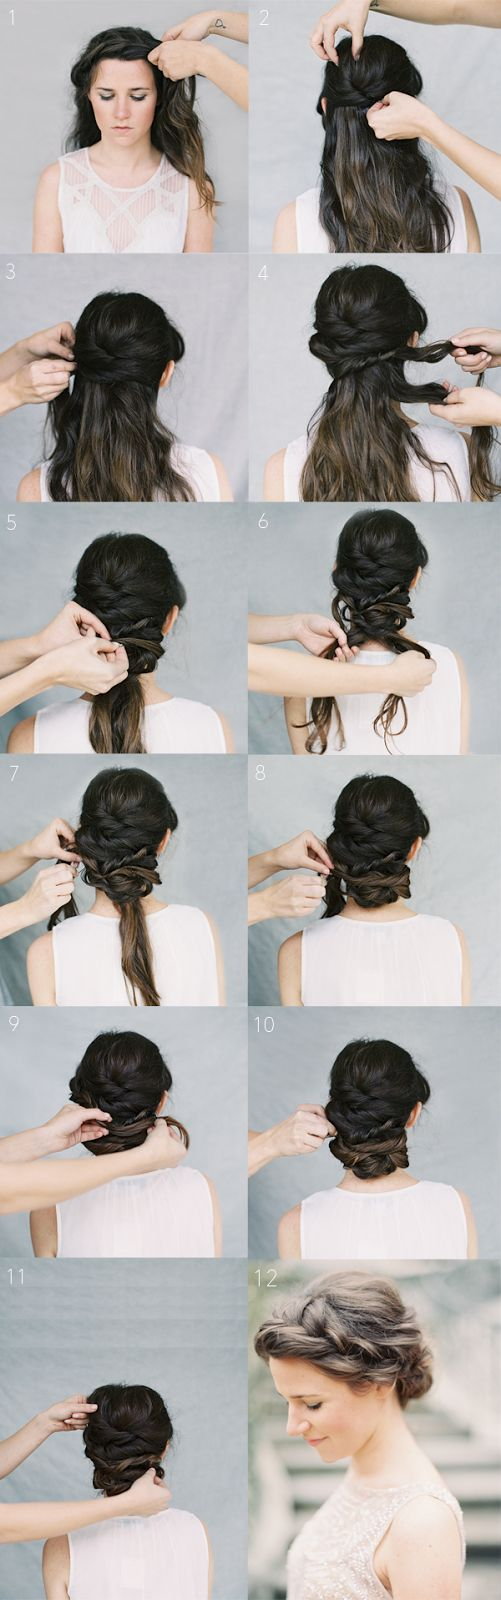 DIY Crown Chignon Braid